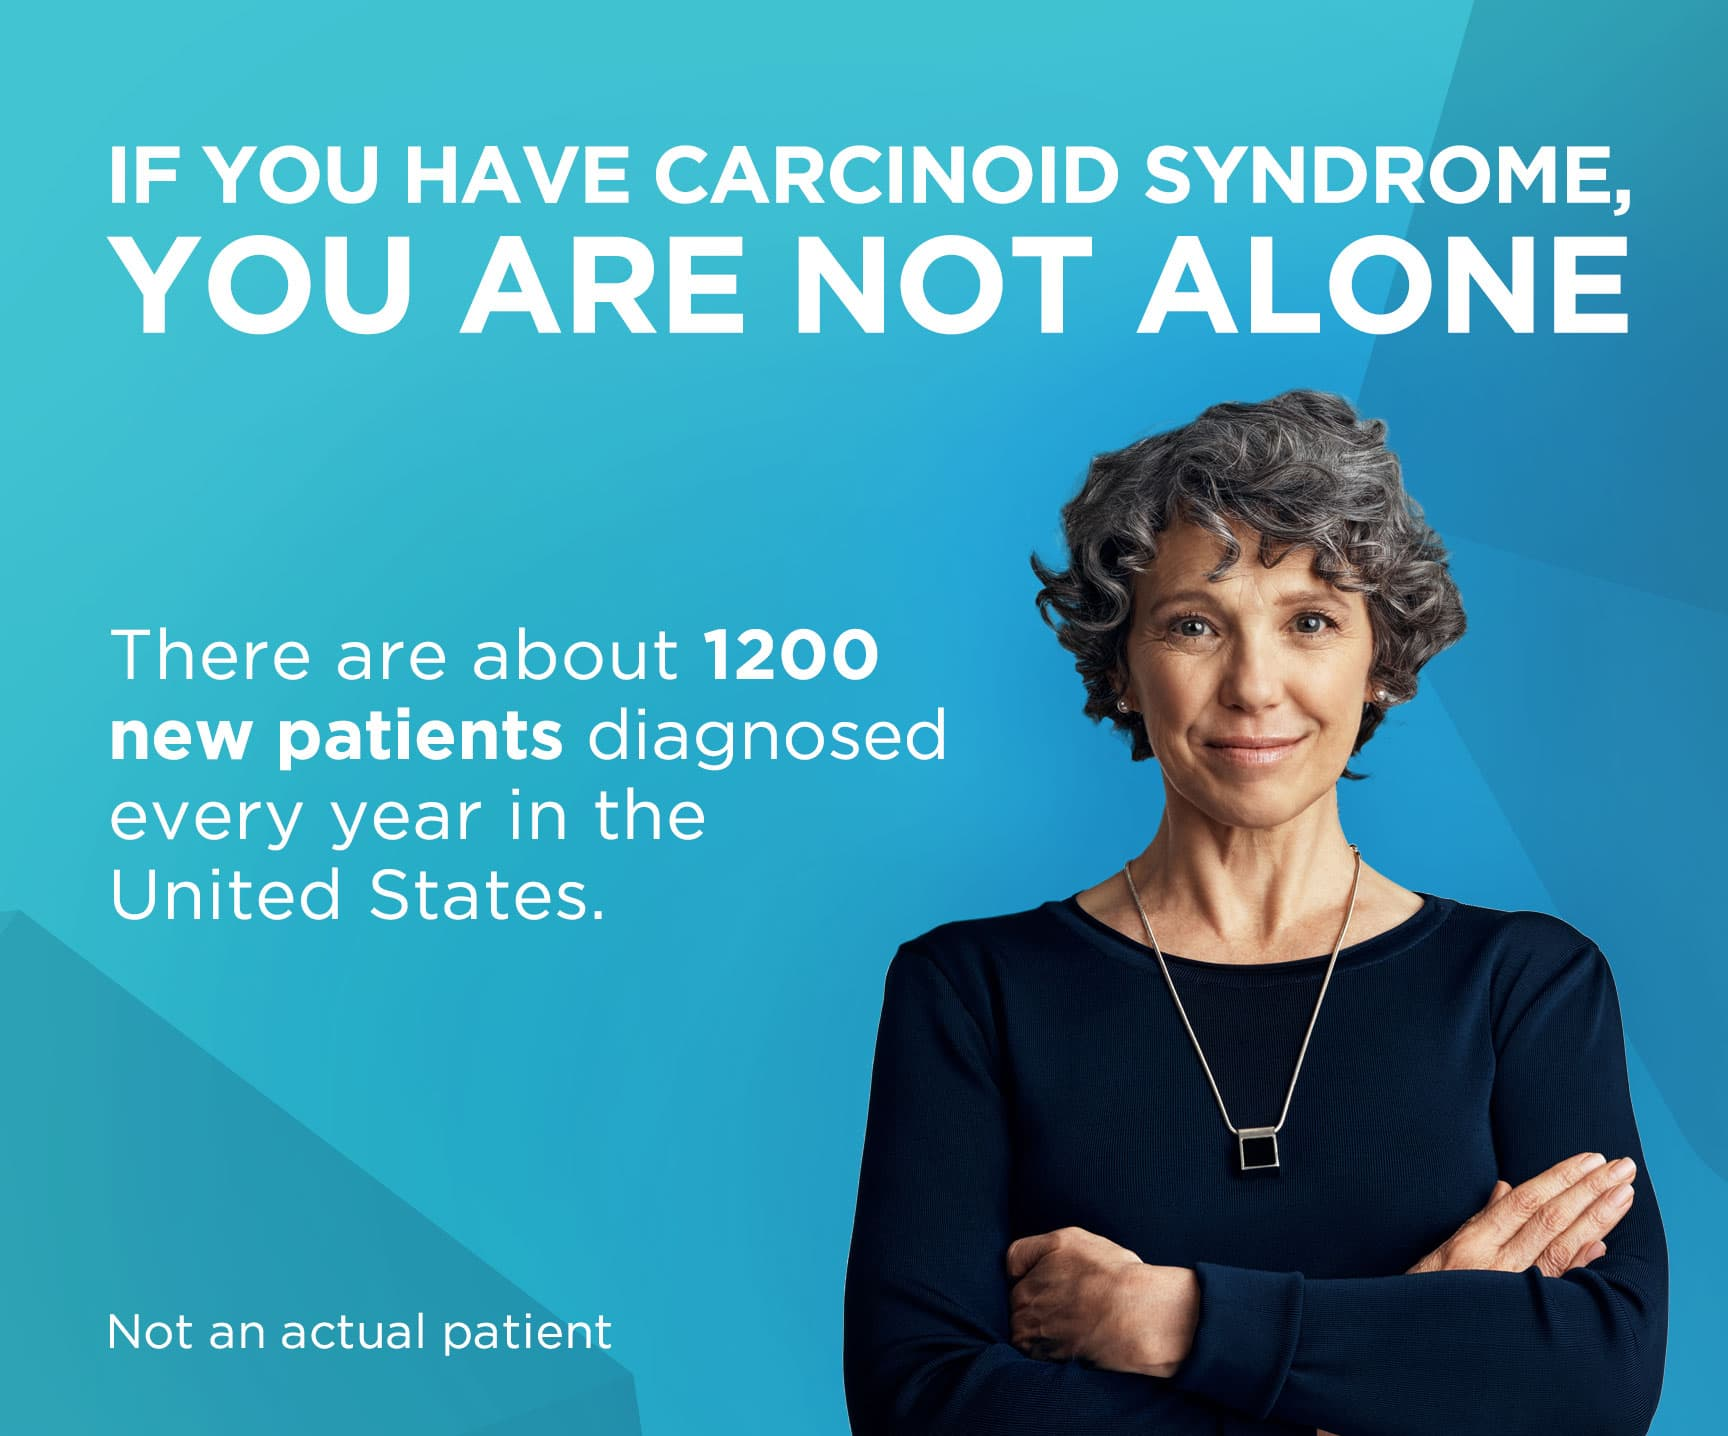 There are about 1,200 new patients diagnosed every year with carcinoid syndrome in the United States